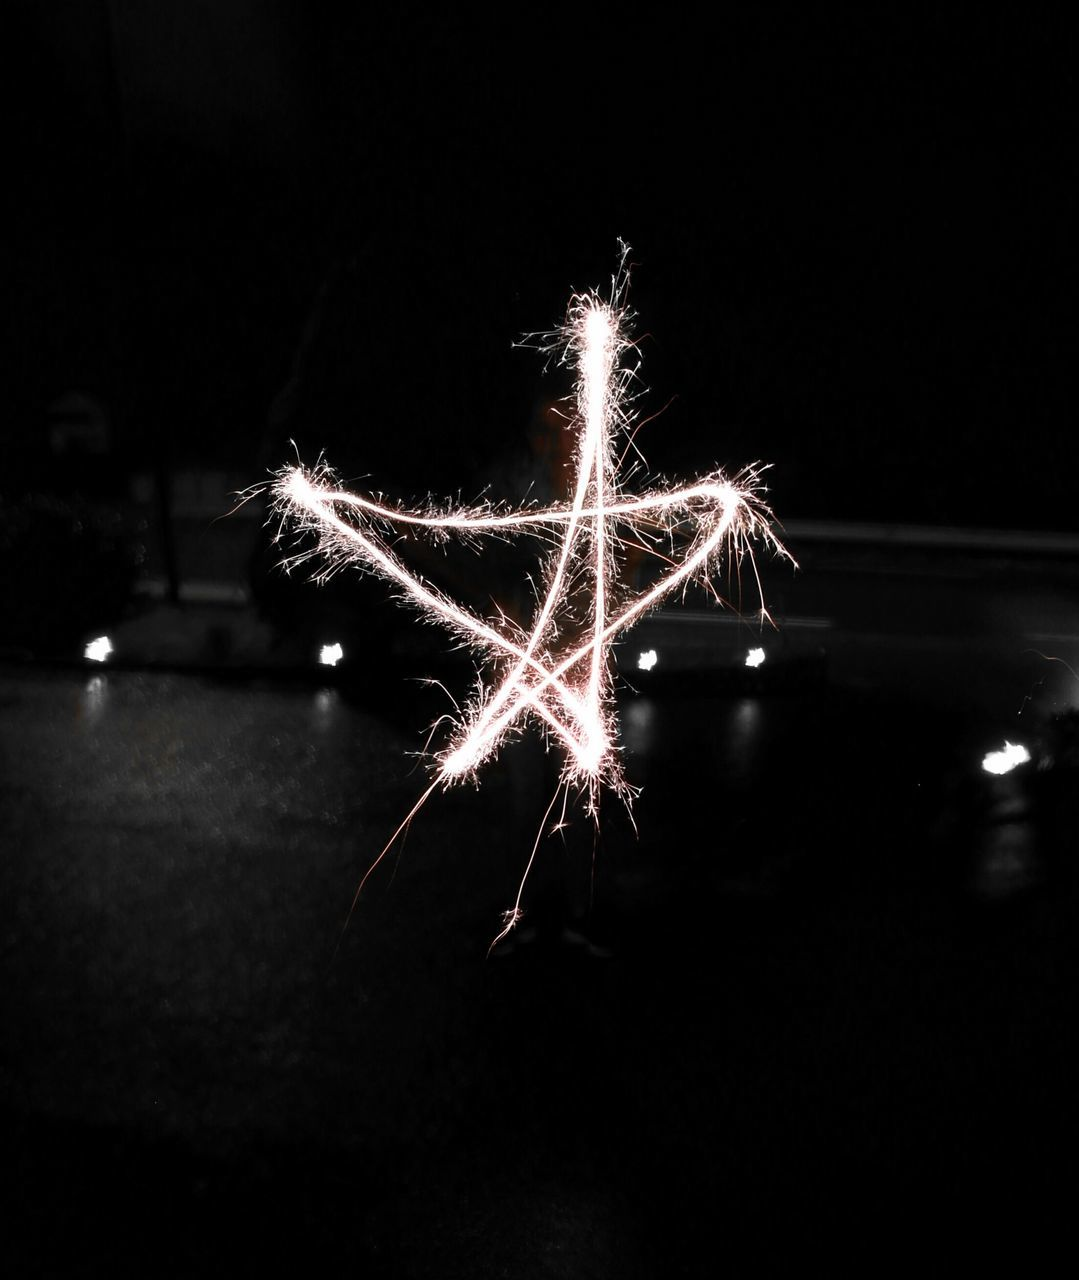 night, long exposure, firework - man made object, celebration, illuminated, firework display, exploding, glowing, event, sparkler, arts culture and entertainment, motion, no people, firework, outdoors, close-up, sky